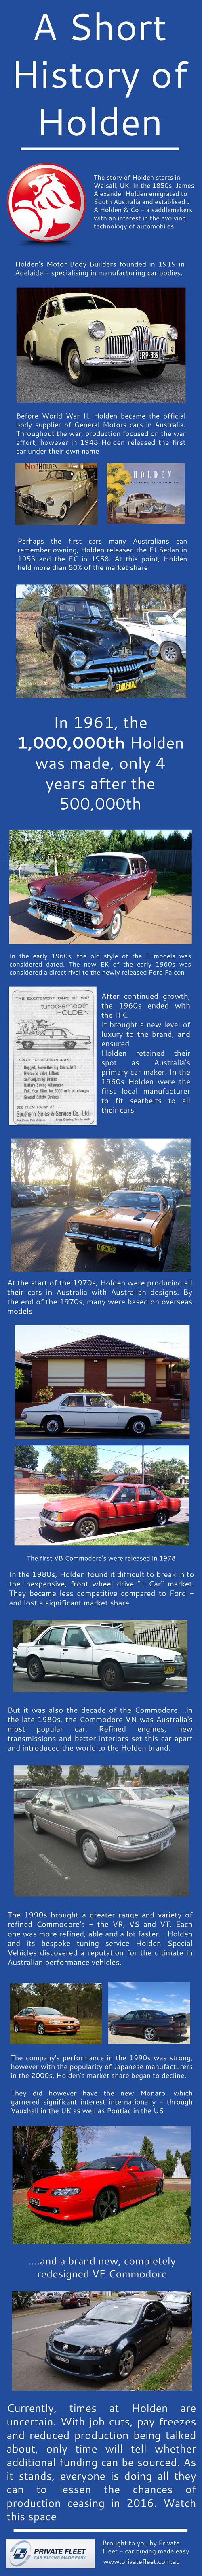 The History of Holden